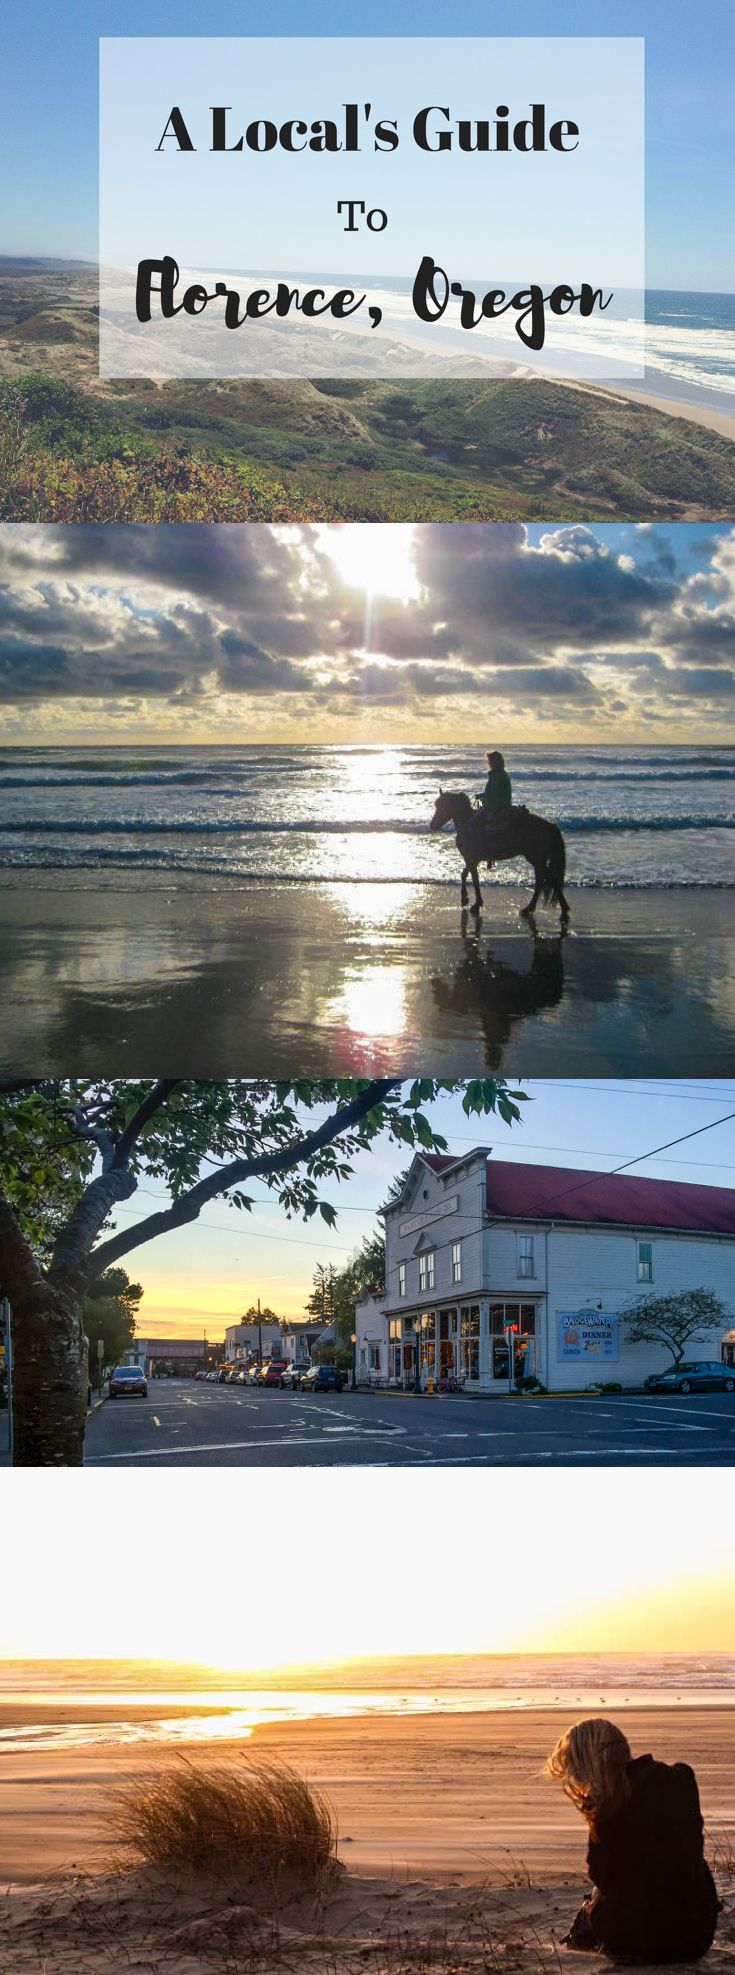 A travel guide of what do eat, drink and do in Florence, Oregon - Oregon's central coast.